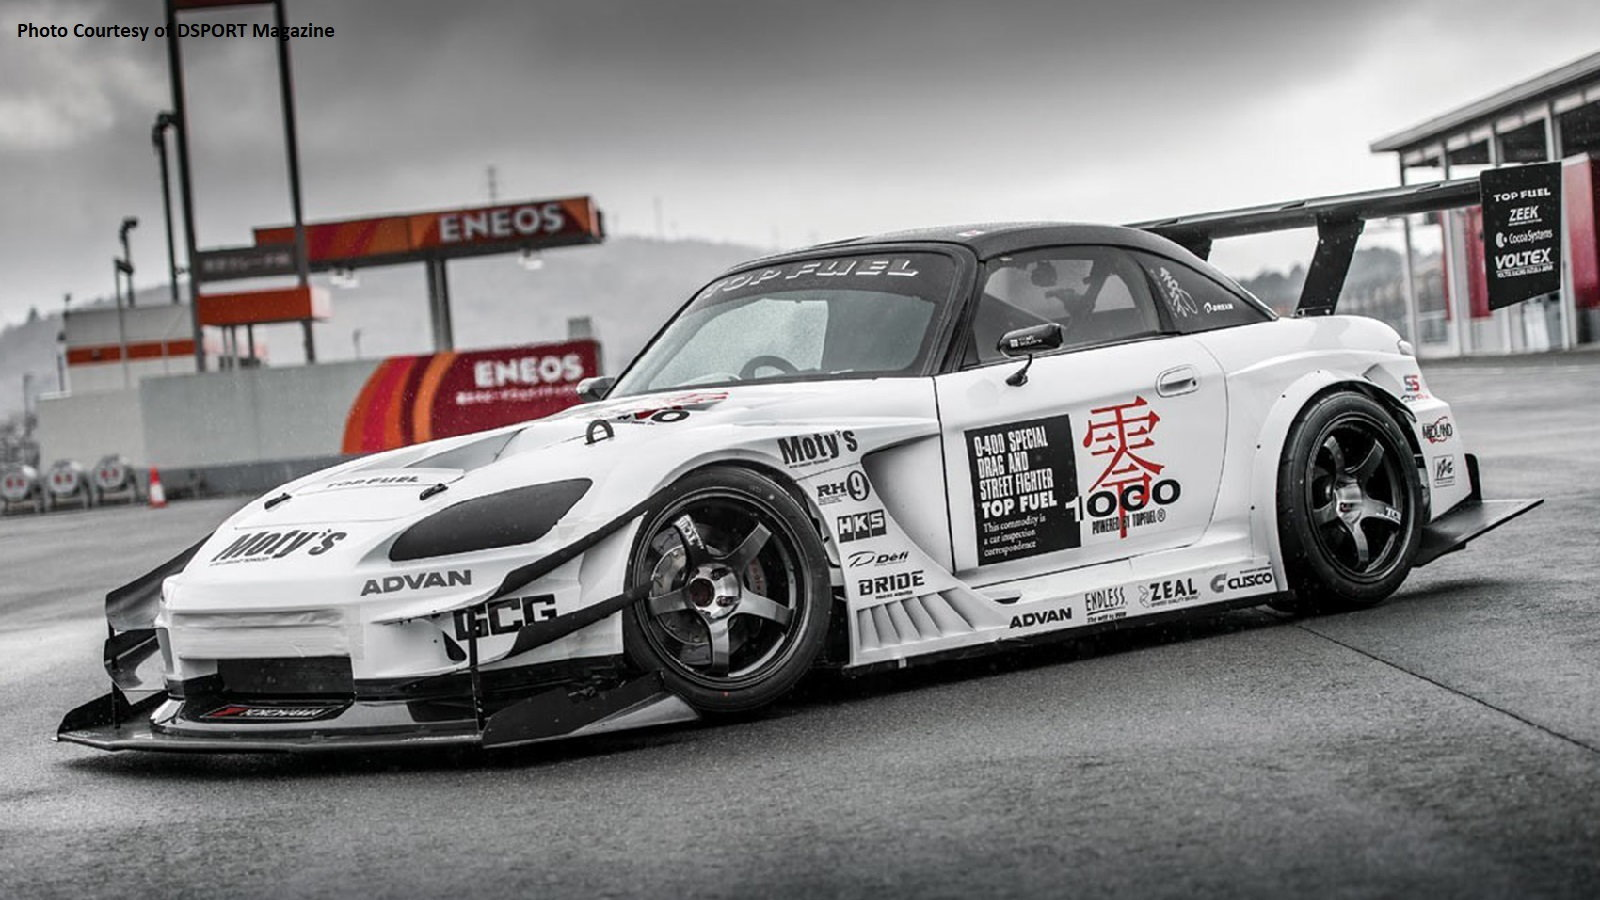 A Look At Top Fuel's Insane S2K Racer